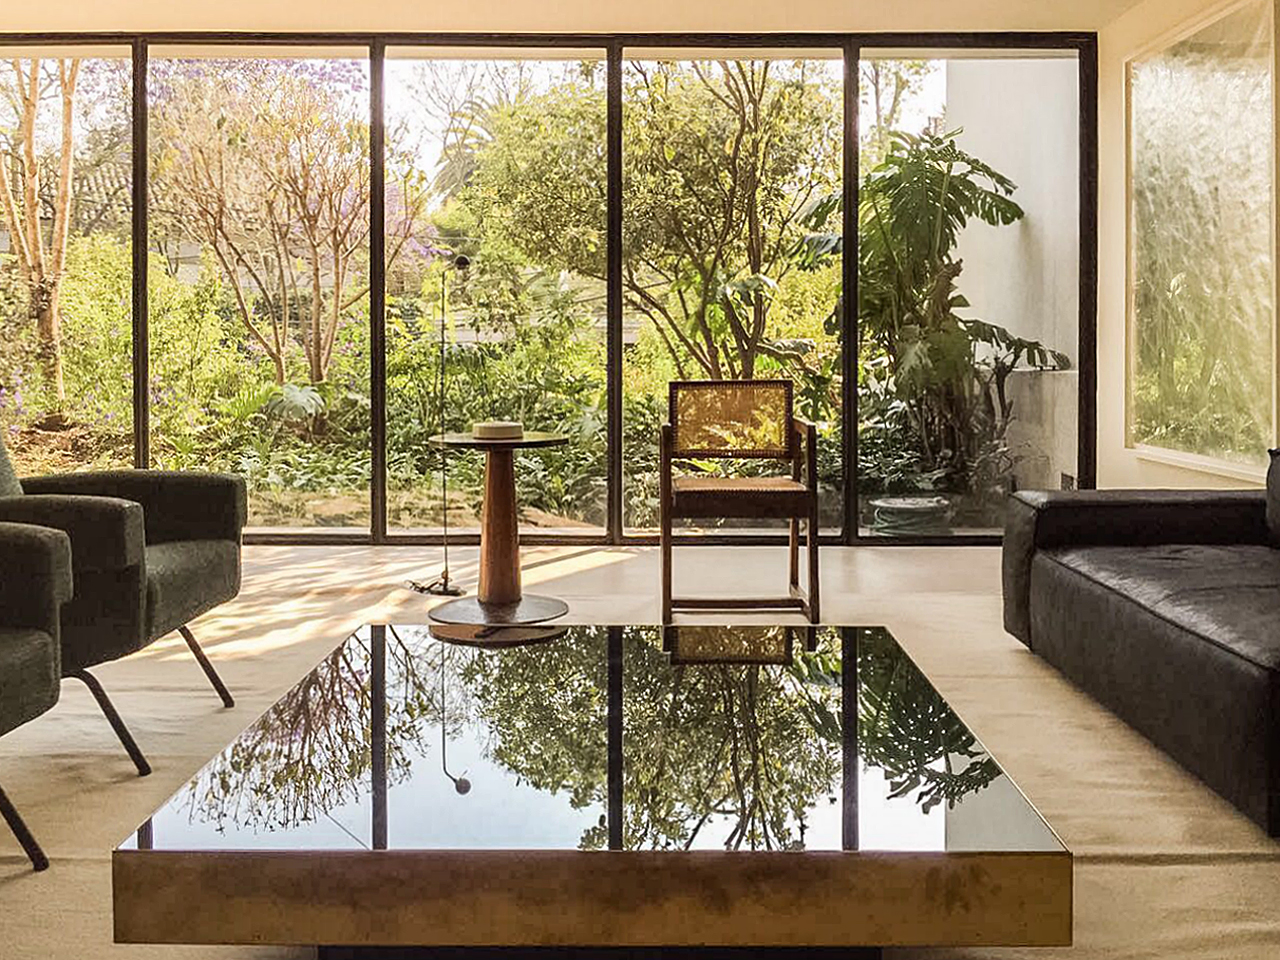 MM House_Mexico City_Marc Merckx Interiors_01.jpg